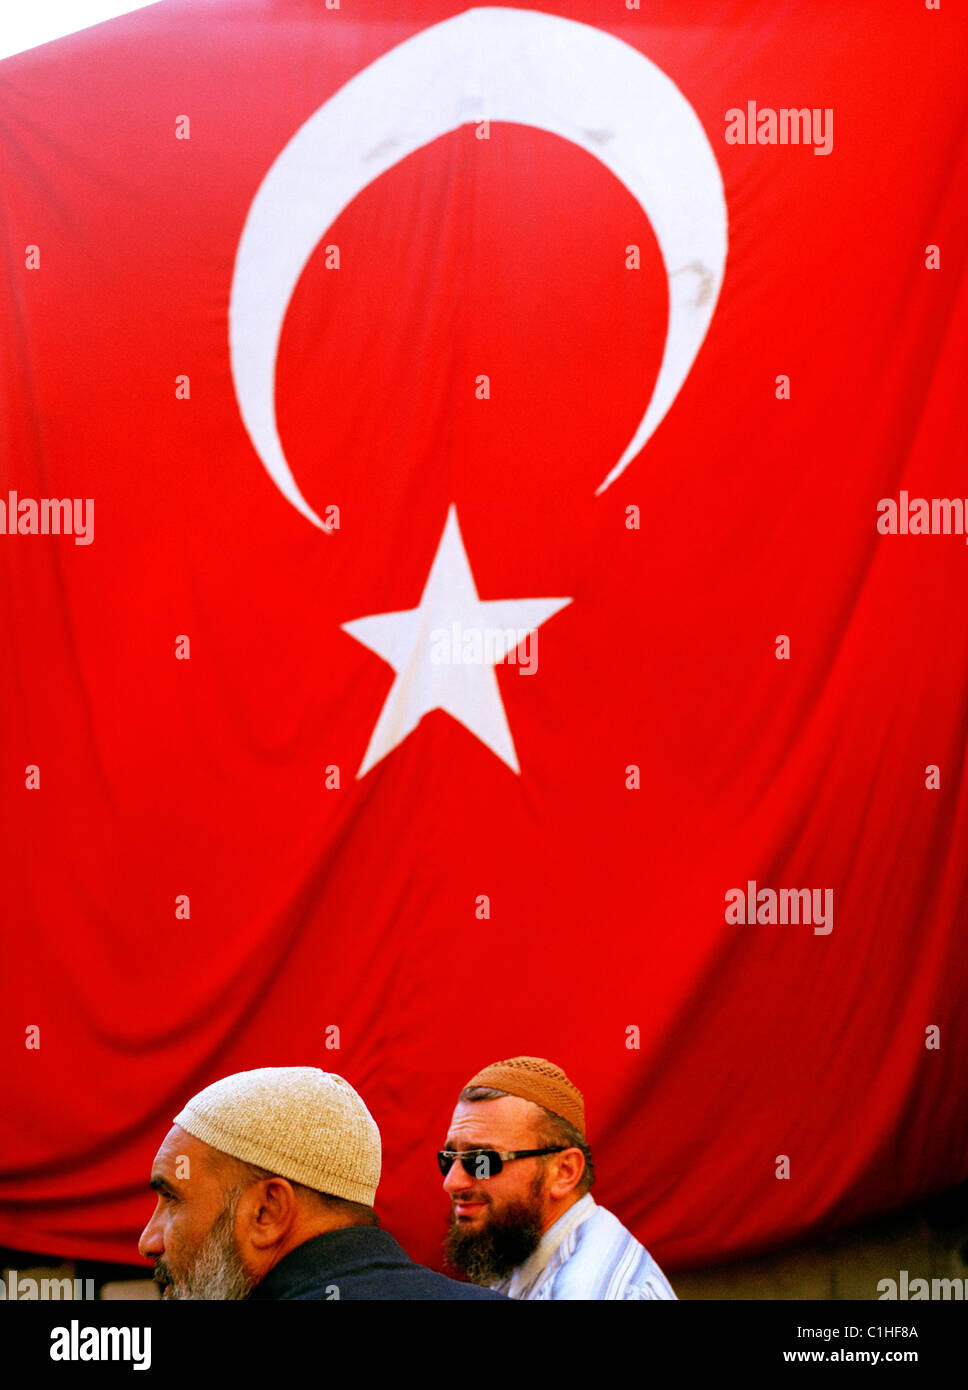 Turkish flag in Fener and Balat in Istanbul in Turkey in Middle East Asia. Nationalism Patriotism Flags Reportage - Stock Image